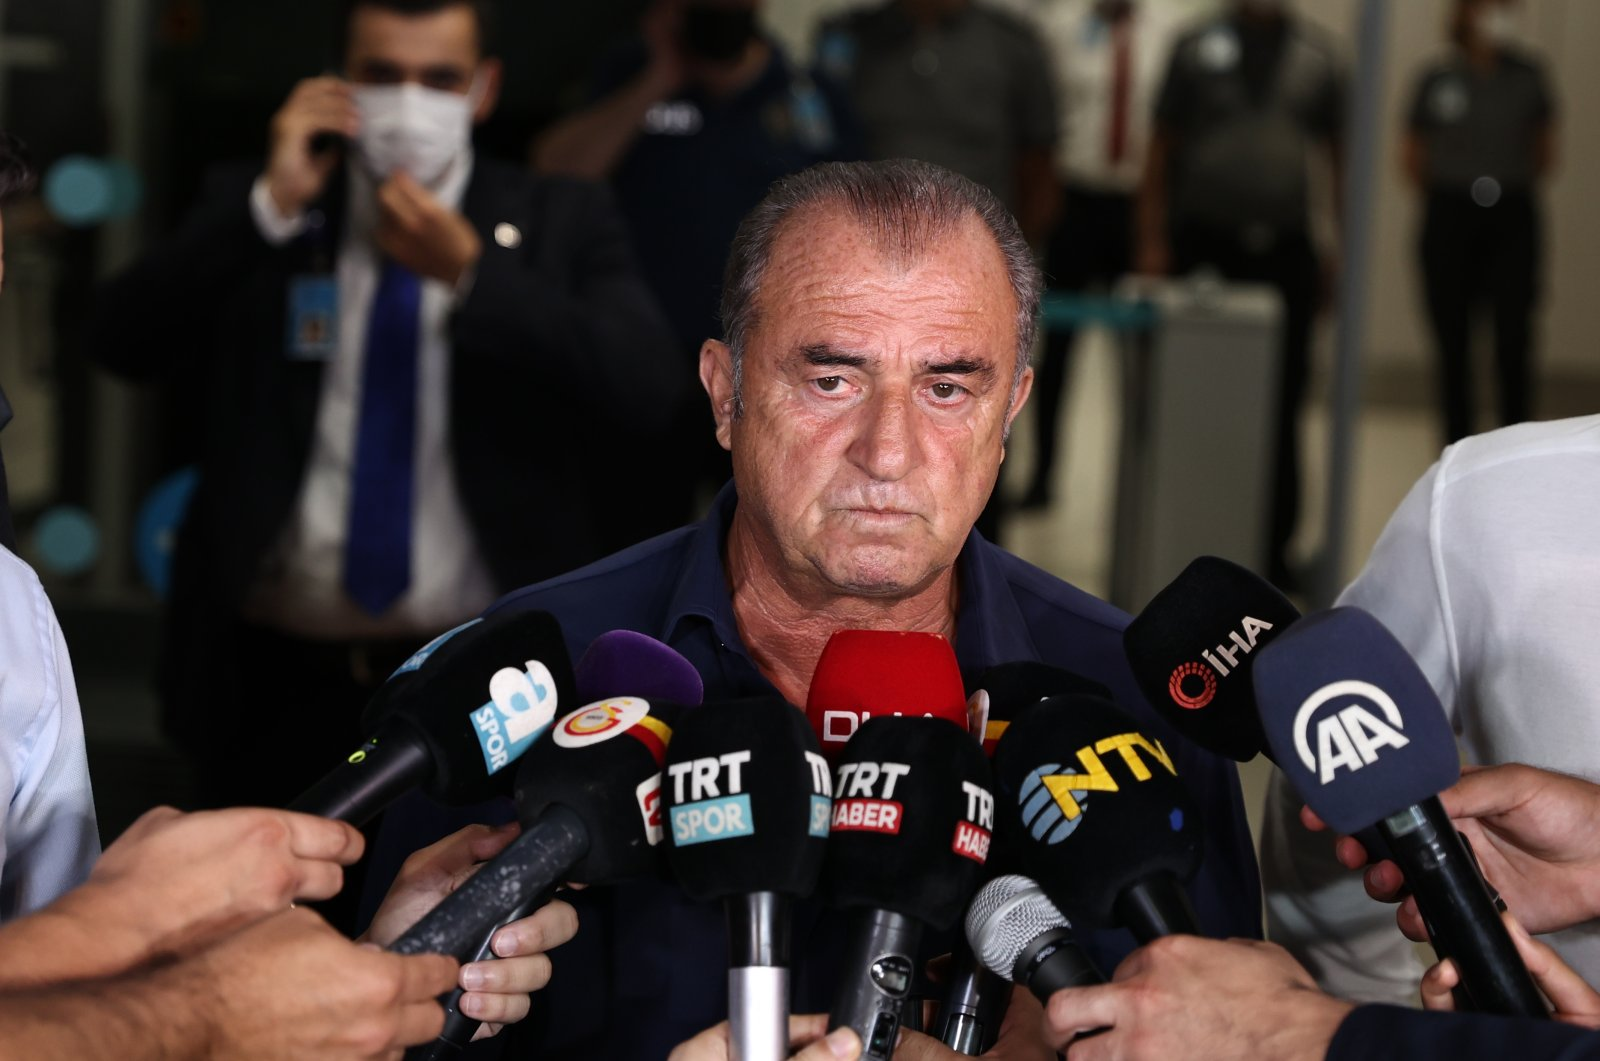 Galatasaray coach Fatih Terim speaks to the media after arriving in Istanbul, Turkey, July 13, 2021. (AA Photo)